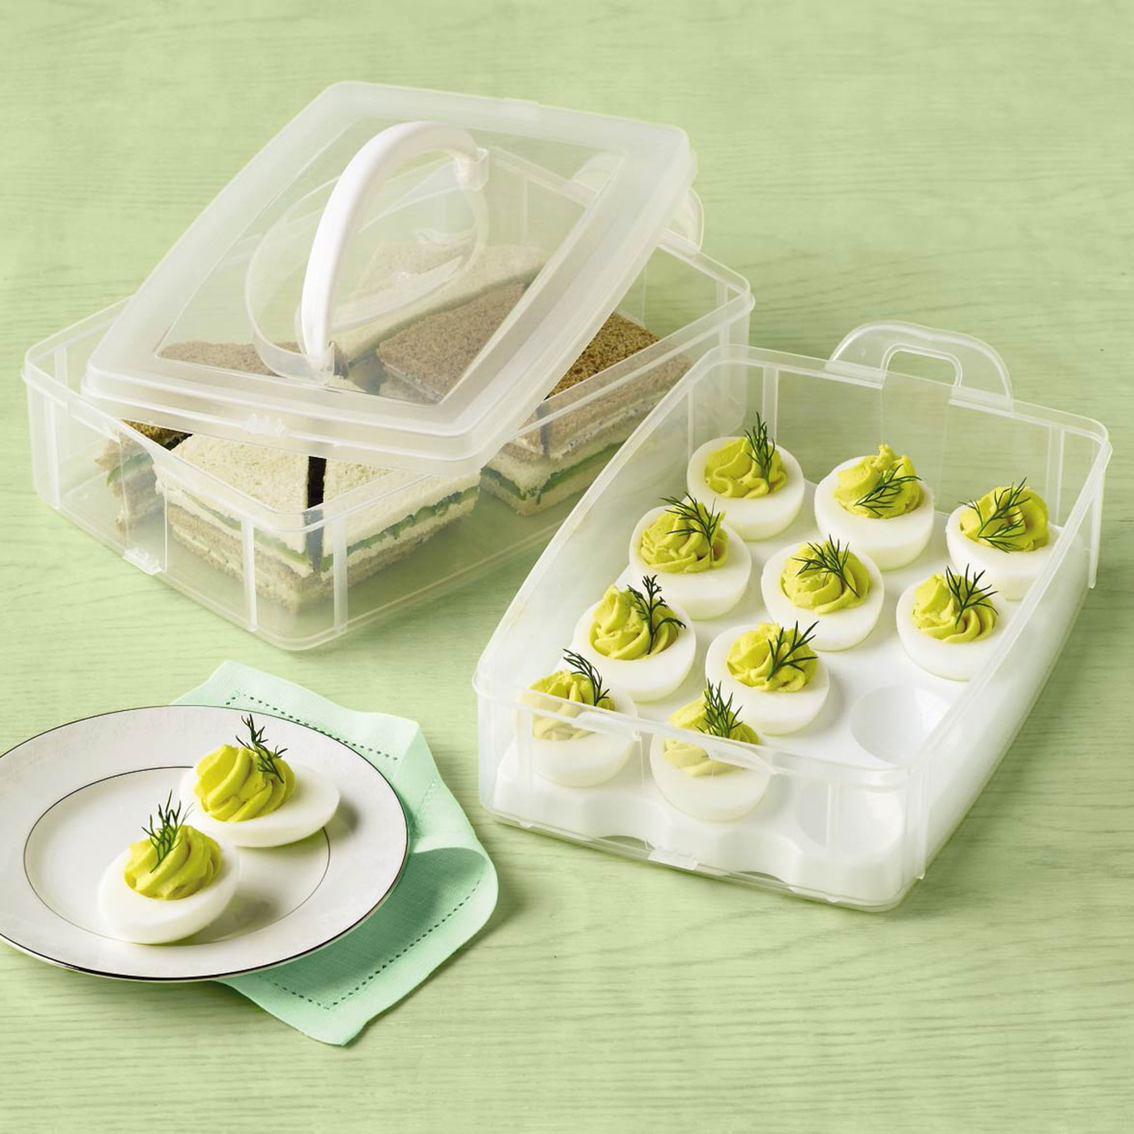 martha stewart collection deviled egg carrier canisters blitsy crafts